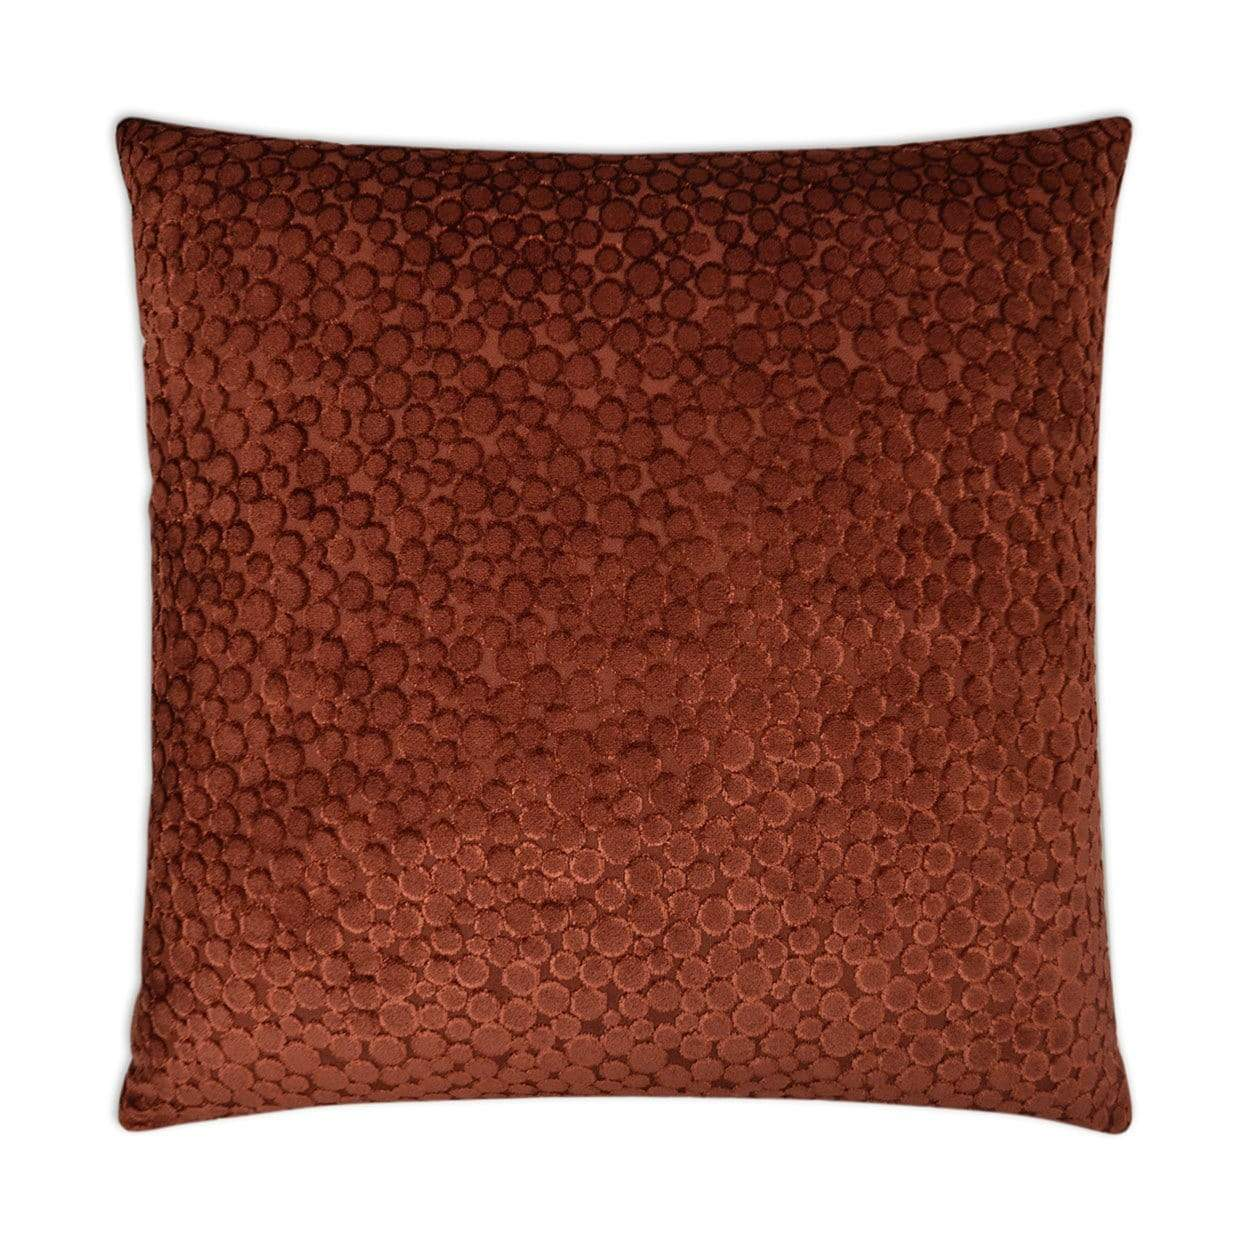 D.V. Kap D.V. Kap Rexford Pillow - Available in 3 Colors Charcoal 3039-C